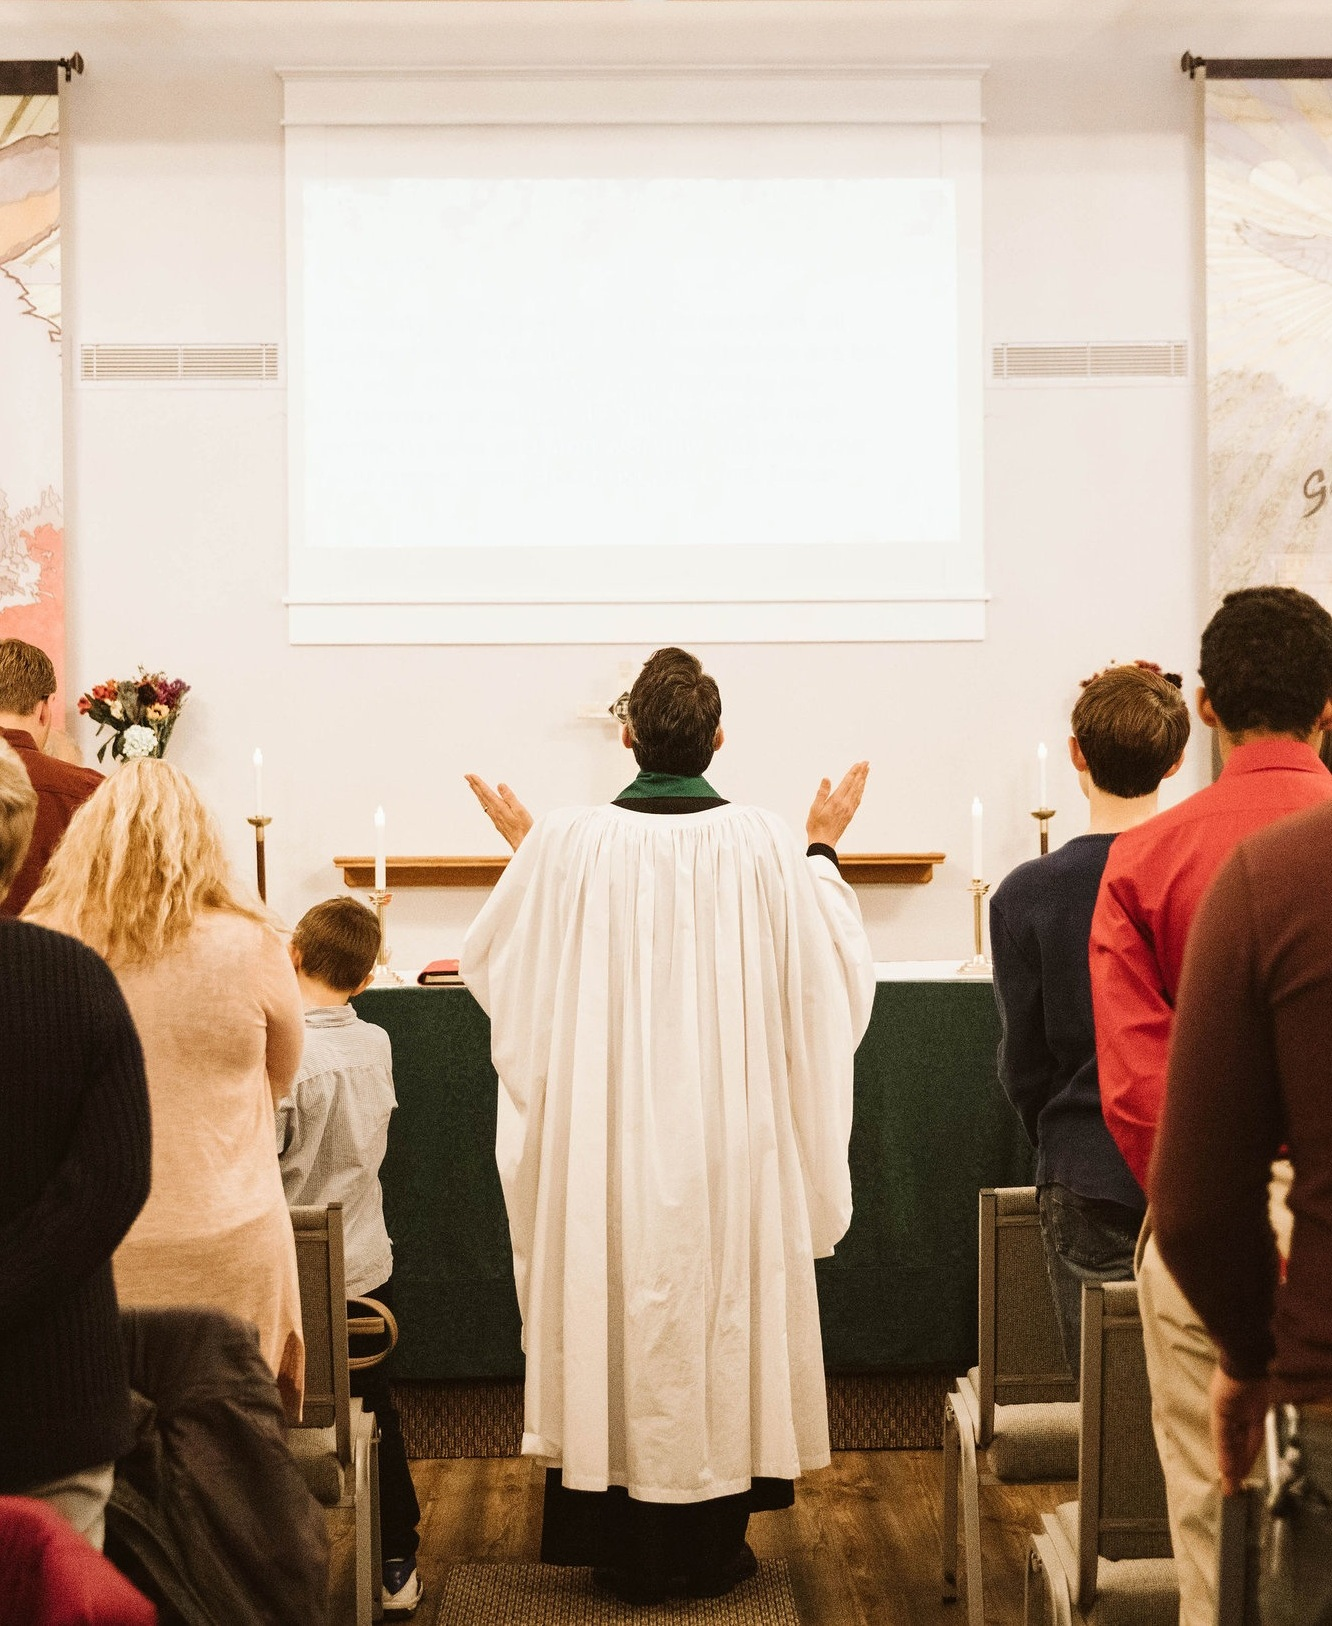 - The structure of our service comes mostly from the Book of Common Prayer. Each Sunday, the Bible passages we read and prayers we say are also being echoed by millions of other Christians around the world. Learn more about our beliefs or our liturgy.